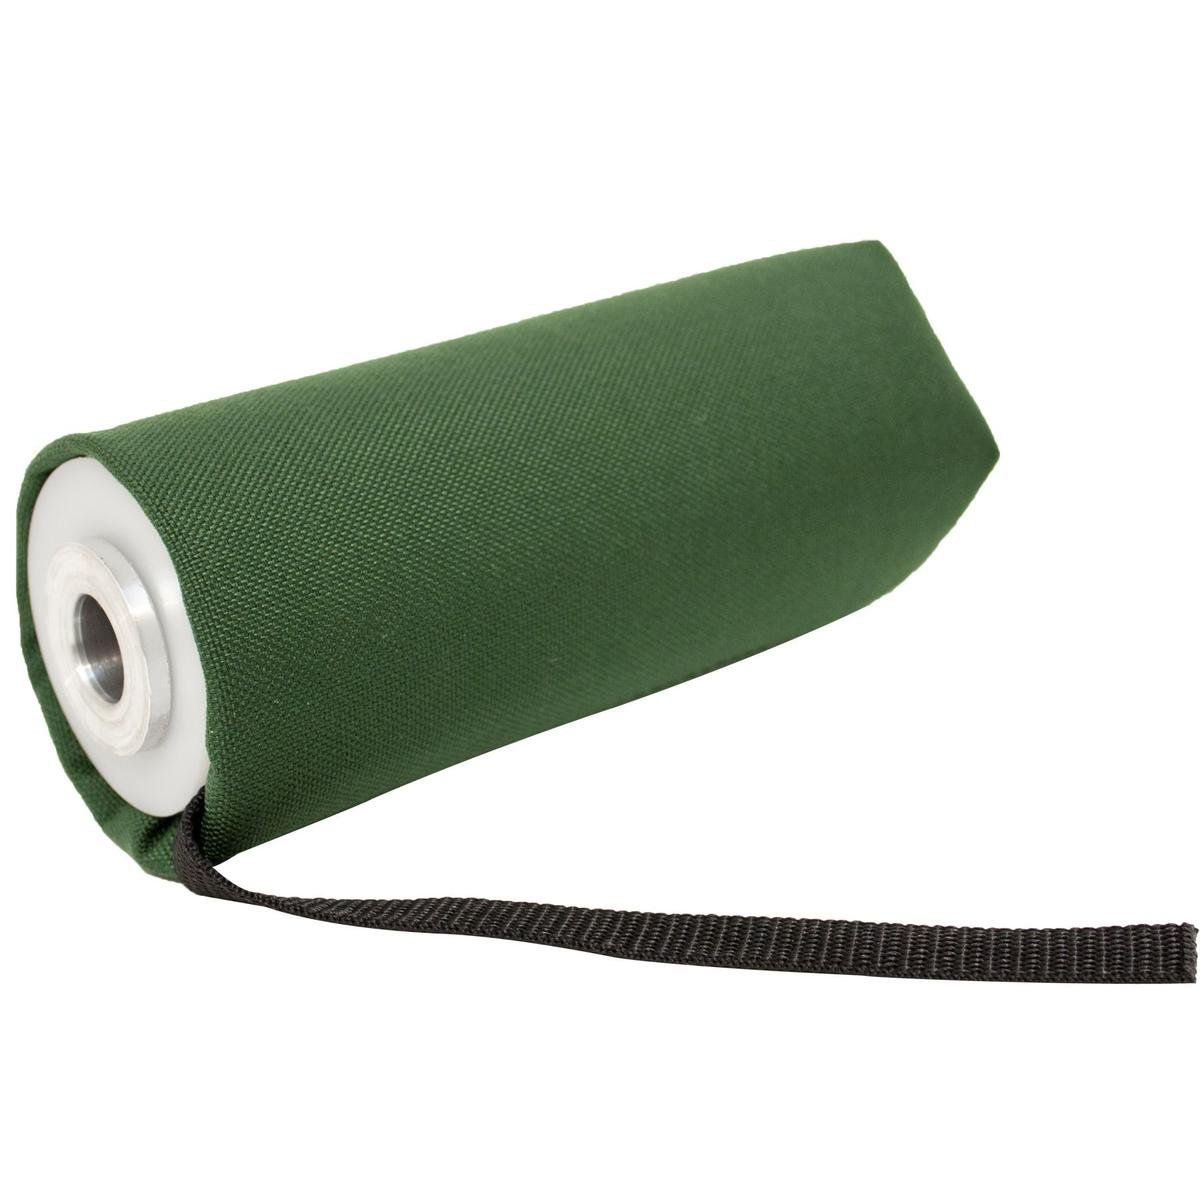 Bisley Green Canvas Dummy with Streamer for Dummy Launcher